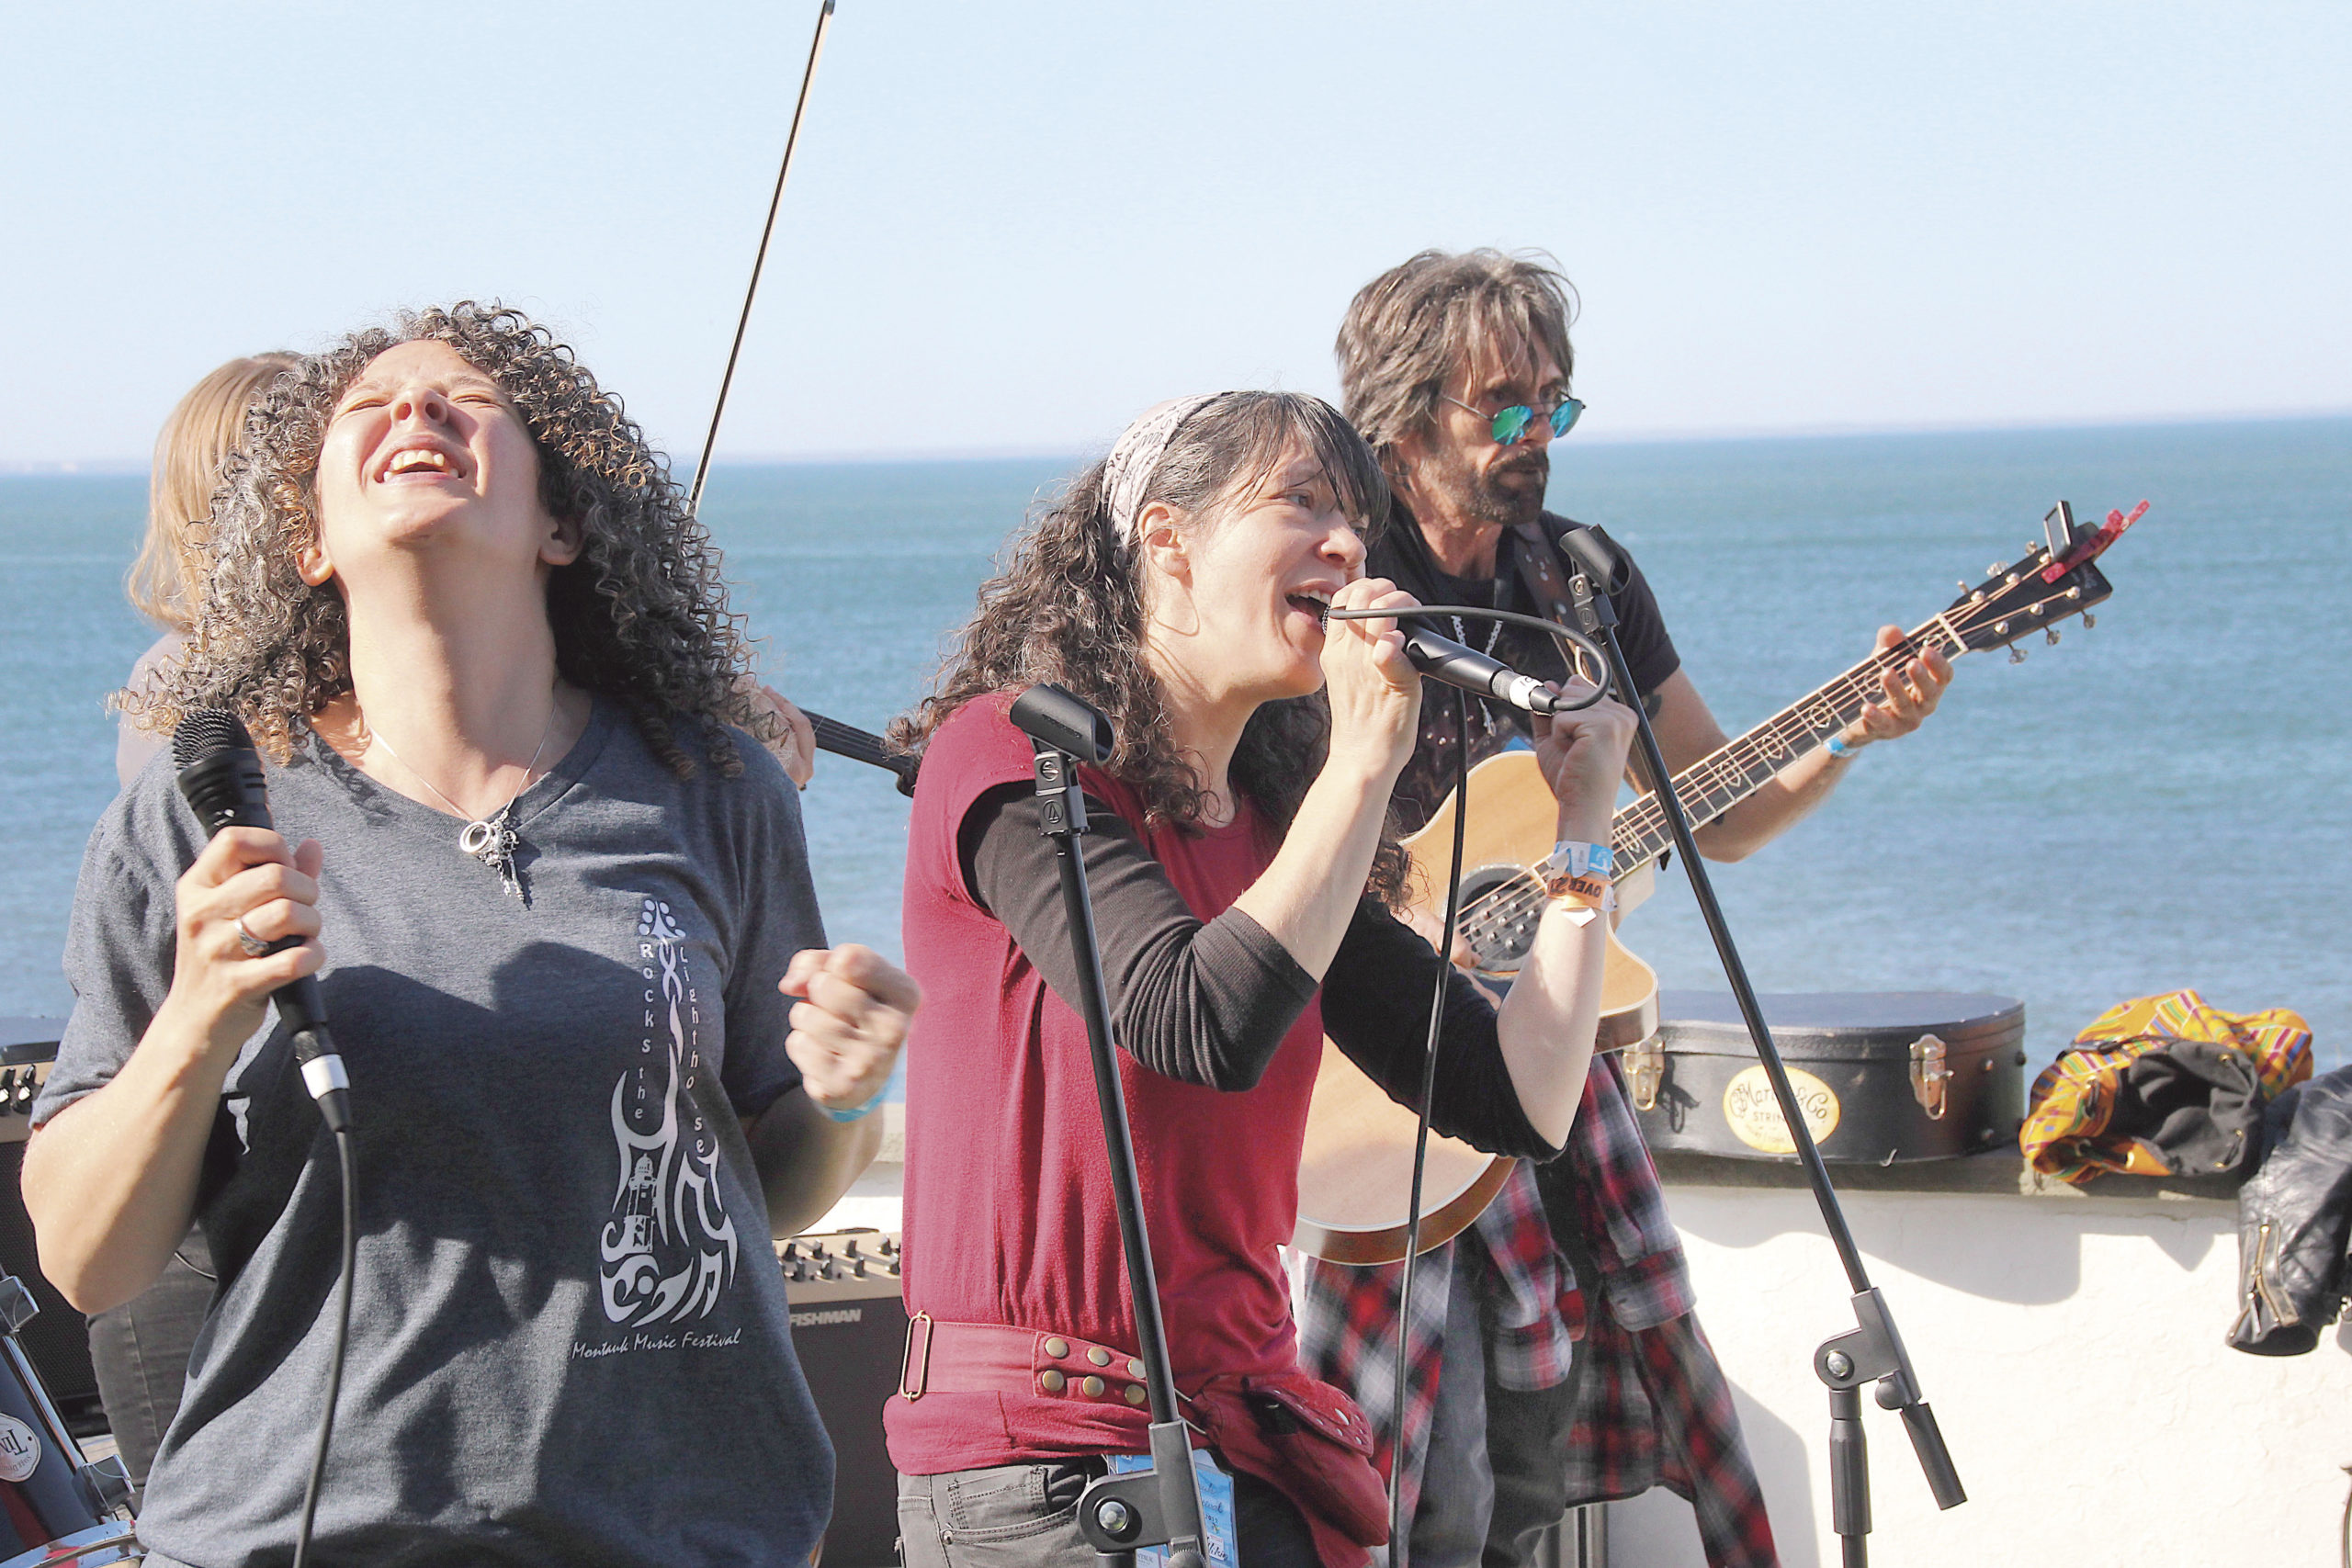 The Point Was Jumpin' May 22 -- Tuatha Dea performs at the Lighthouse Cafe as part of the Montauk Music Festival